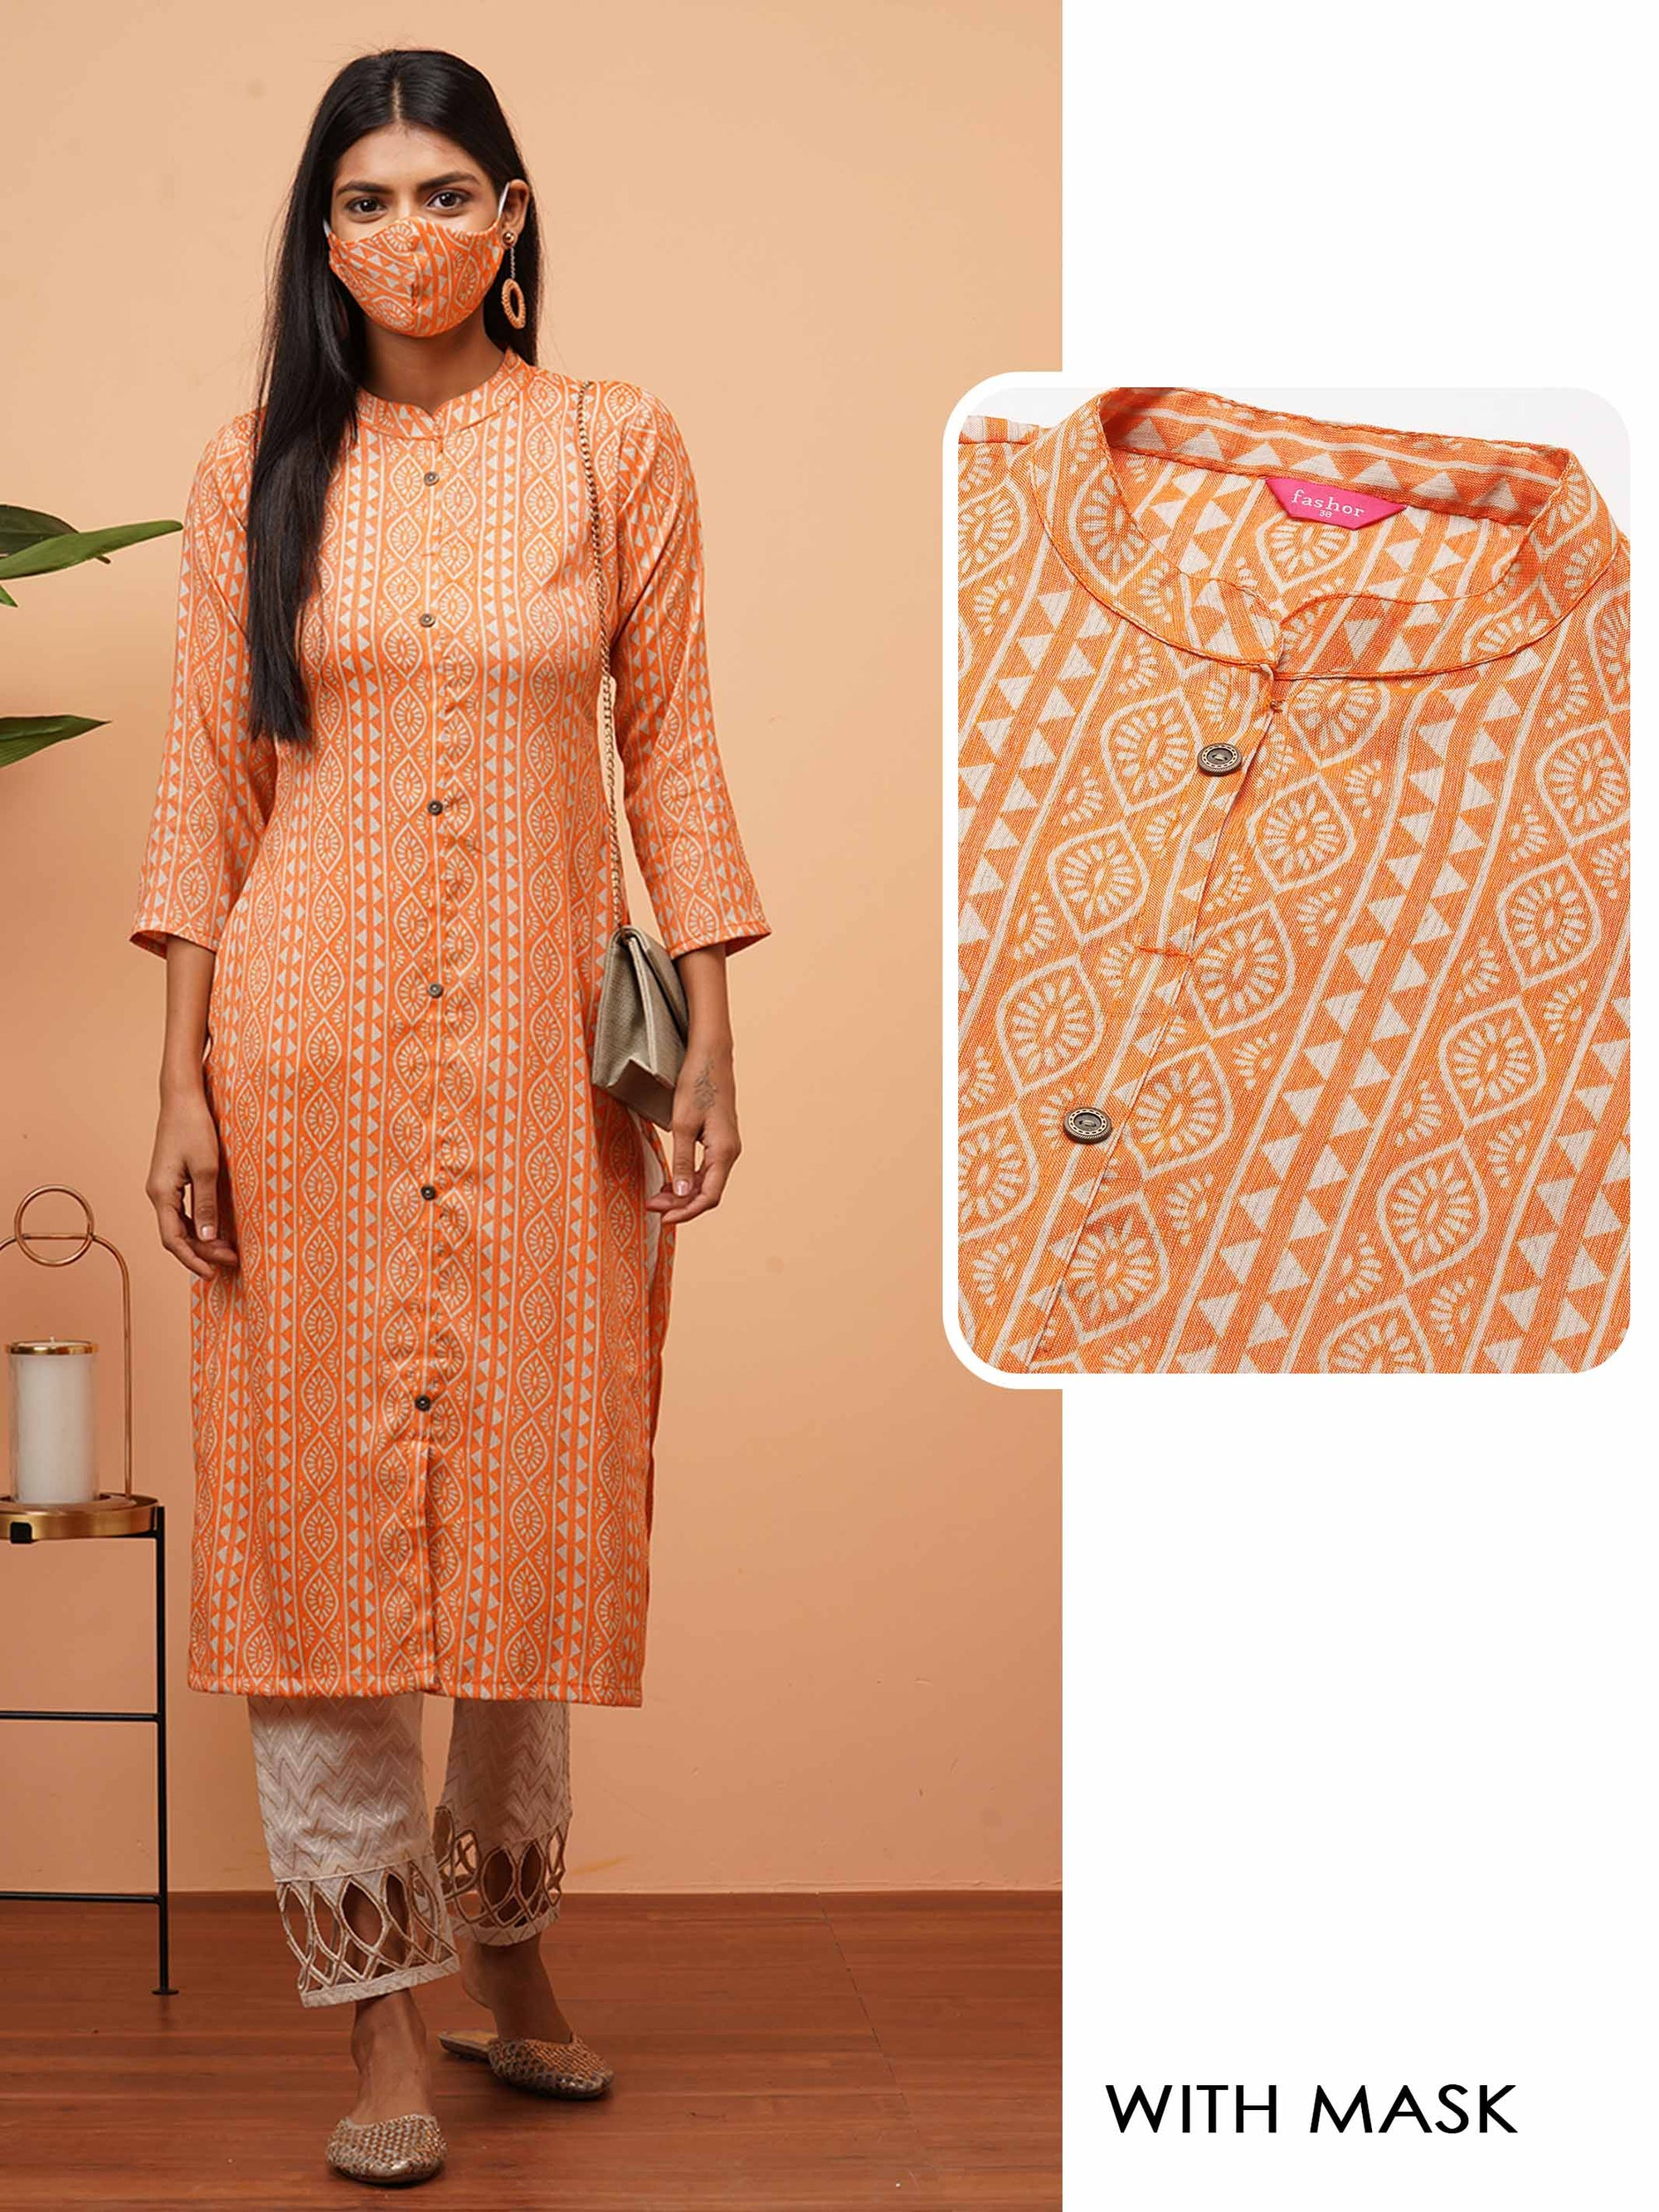 Ethnic Desne Printed Straight Kurta with 2-Ply Mask - Orange